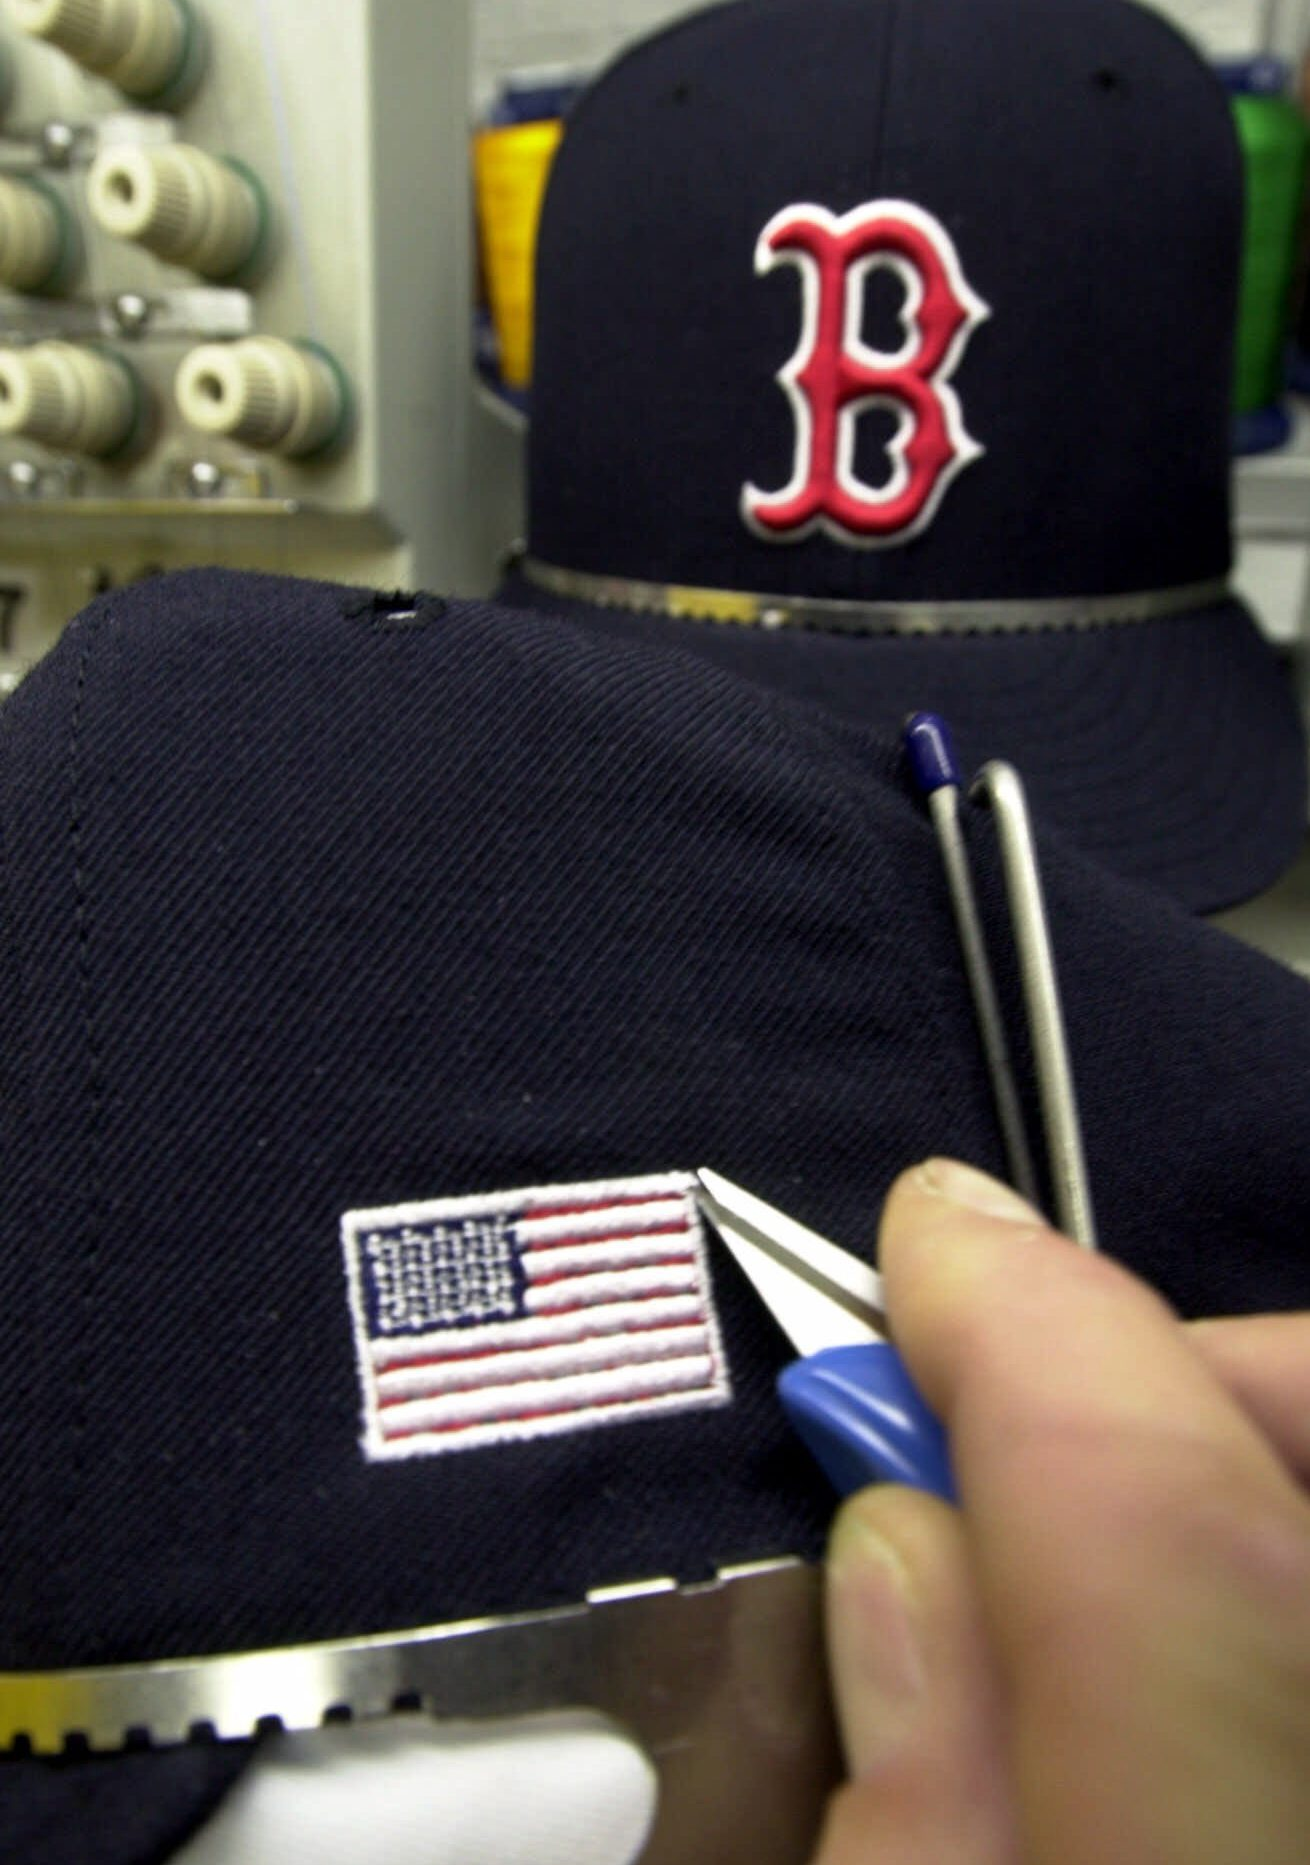 Mandatory Credit: Photo by David Duprey/AP/Shutterstock (6465200a) MAJOR LEAGUE CAPS A worker stiches an American flag into a baseball cap at the New Era Cap Company in Buffalo, N.Y., . The company is stitching American flags onto the caps of Major league baseball players to wear when play is resumed after Tuesday's terrorist attacks in New York and Washington. The cap maker's plants in Jackson, Ala., and Buffalo will handle the last-minute order from the league. Flags about an inch-high will appear on the caps' left side ATTACKS BASEBALL CAPS, BUFFALO, USA